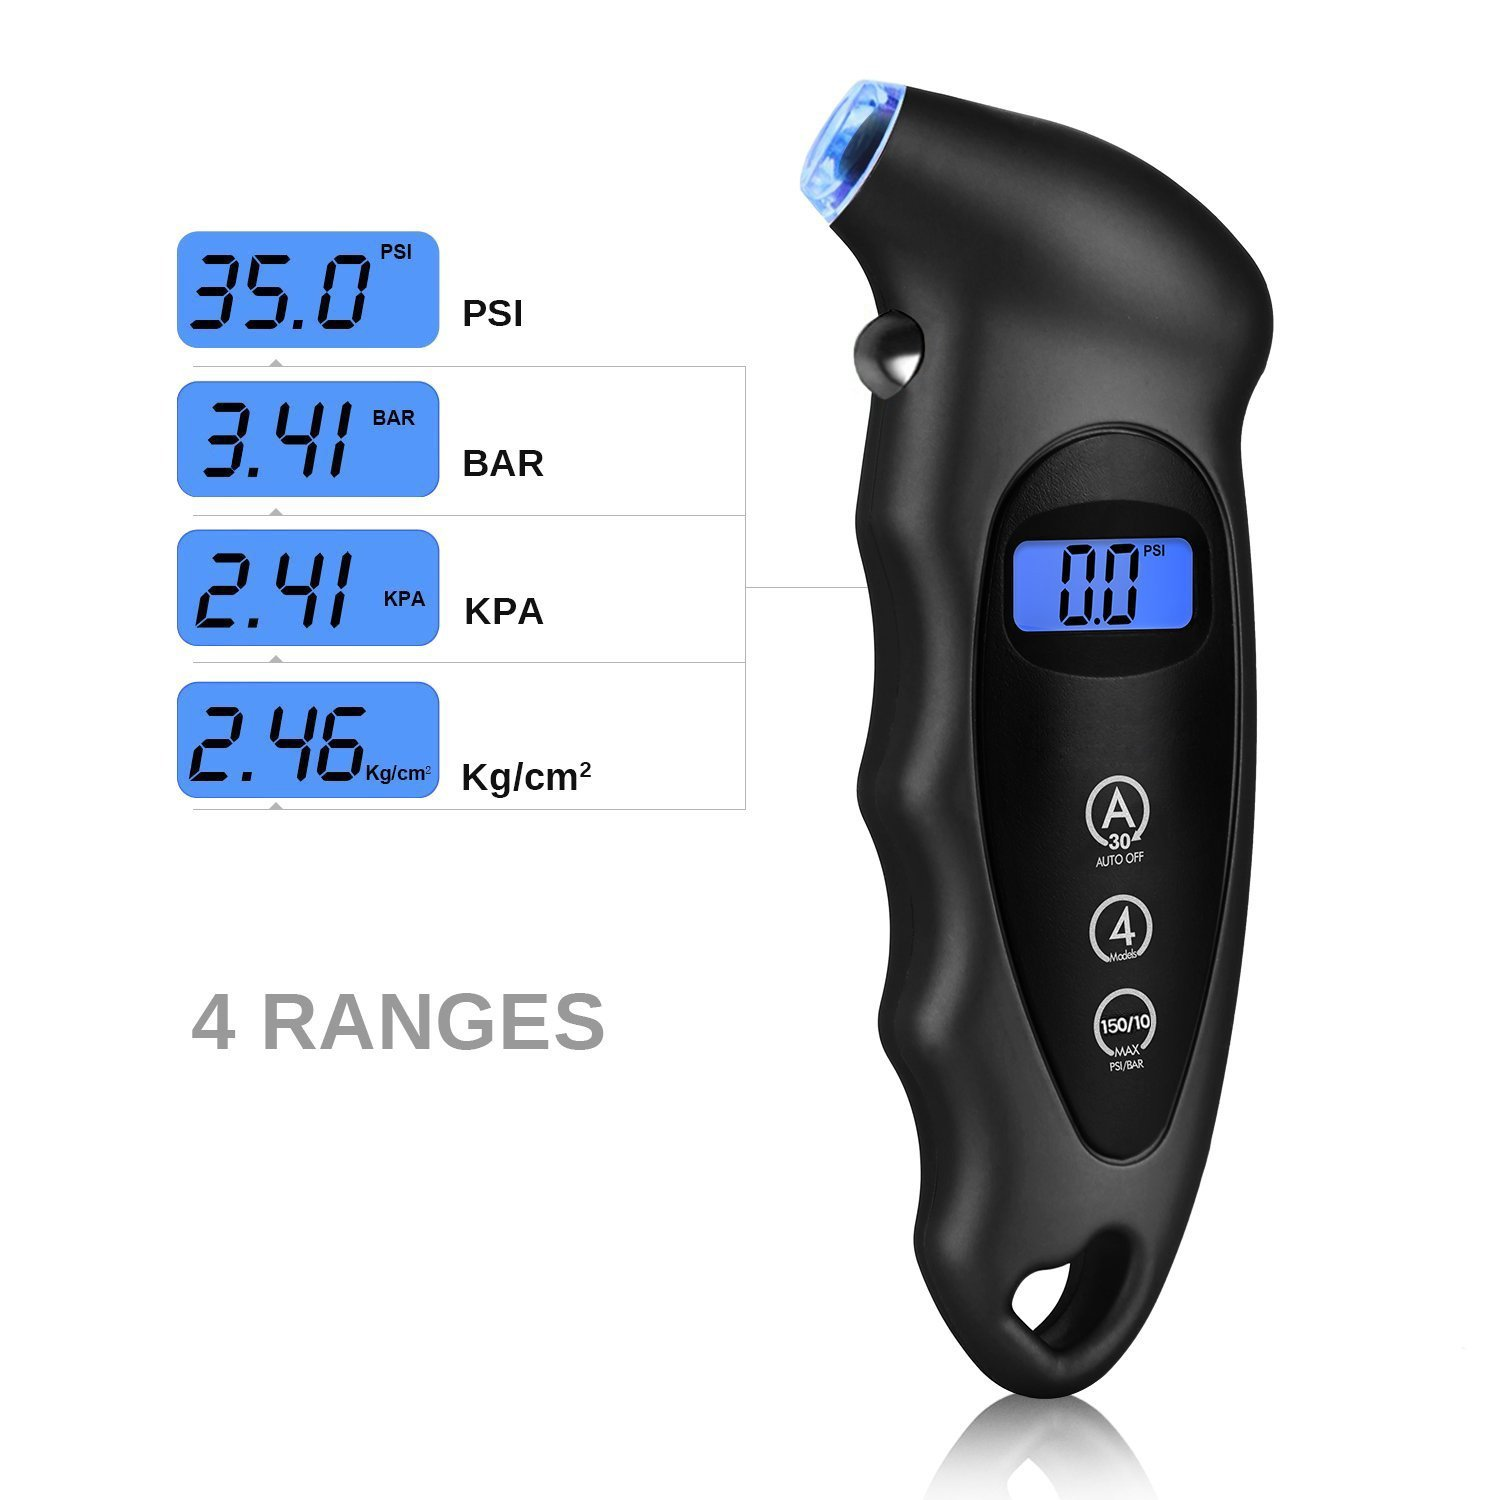 Digital Tire Pressure Gauge Best for Car Heavy Duty Air Gauge and Non-Slip Grip etc. Motorcycle Bicycle Maxesla Classic Tire Gauge Trongle 150 PSI 4 Settings with Backlight LCD Display